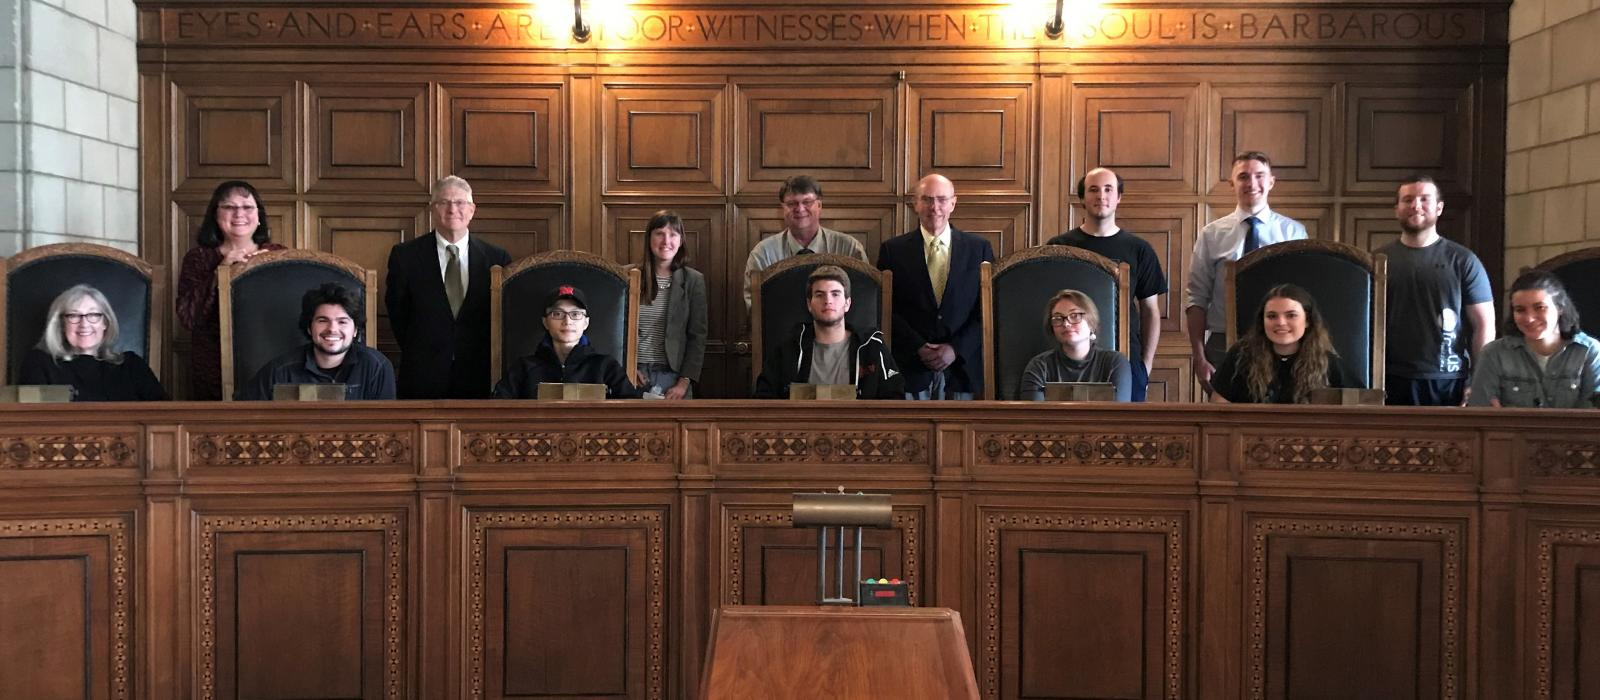 UNL students visit Nebraska Supreme Court as part of a pop-up class on covering the courts offered by UNL College of Journalism and Mass Communications.